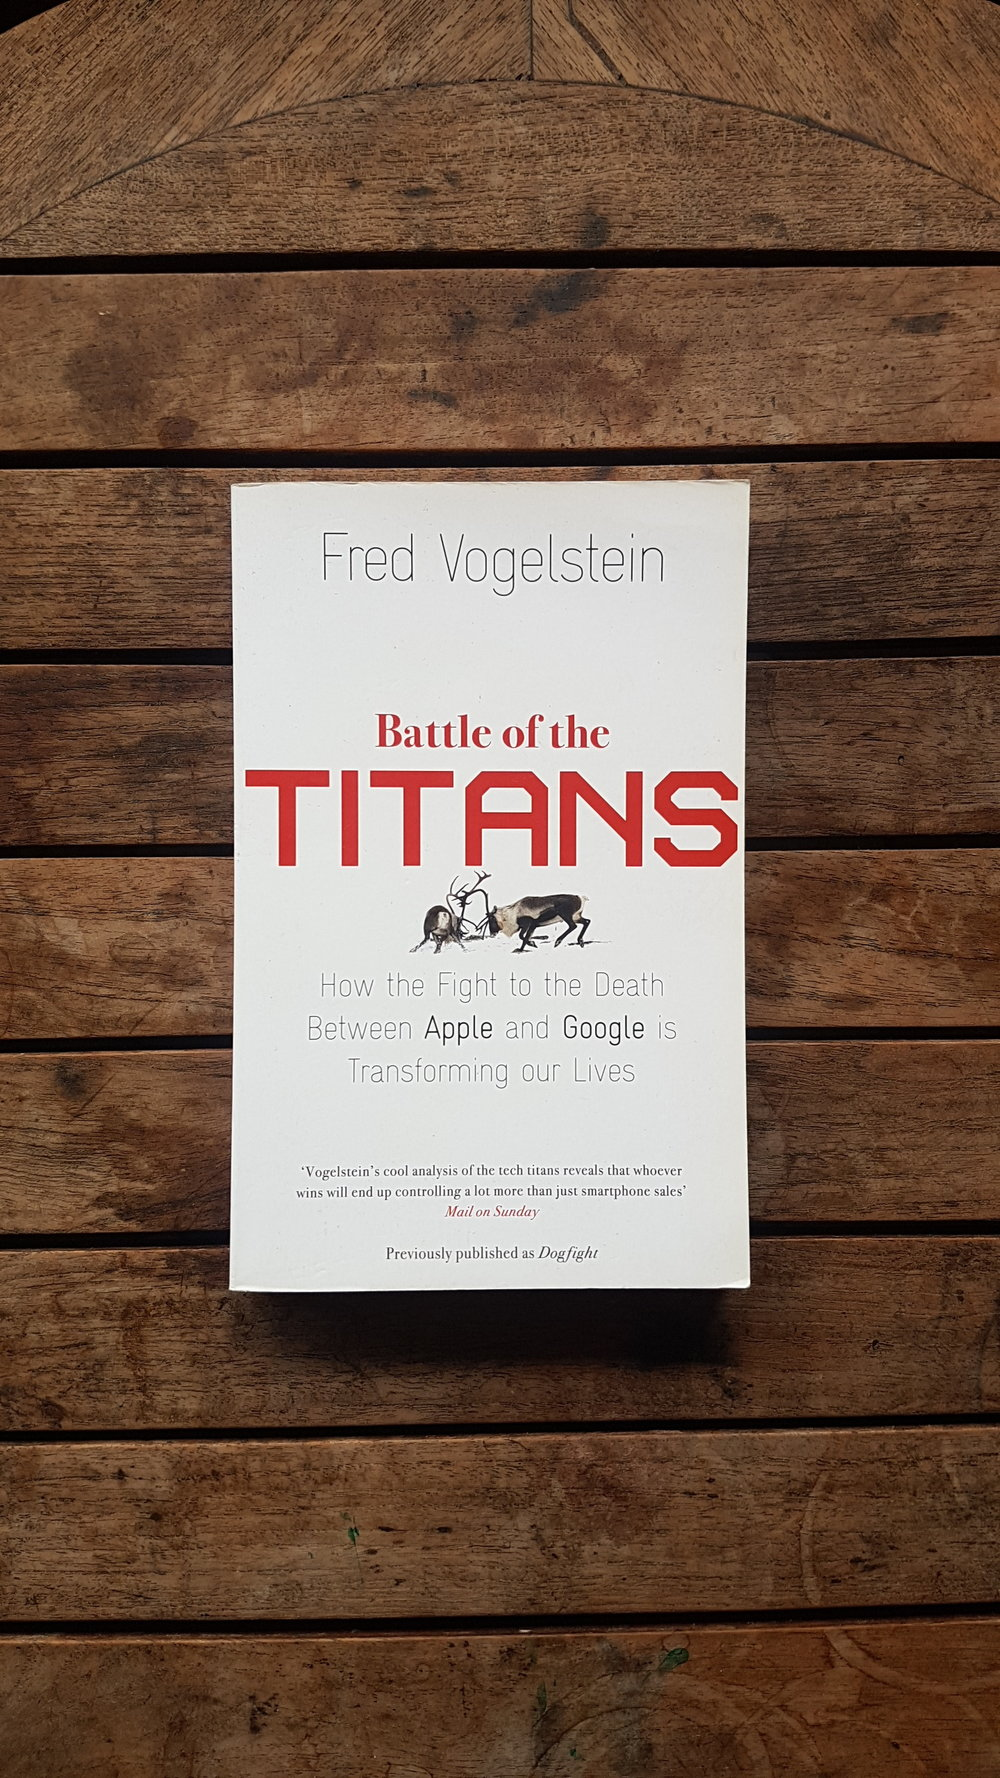 Battle of the Titans: How the Fight to the Death Between Apple and Google is Transforming Our Lives   by Fred Vogelstein